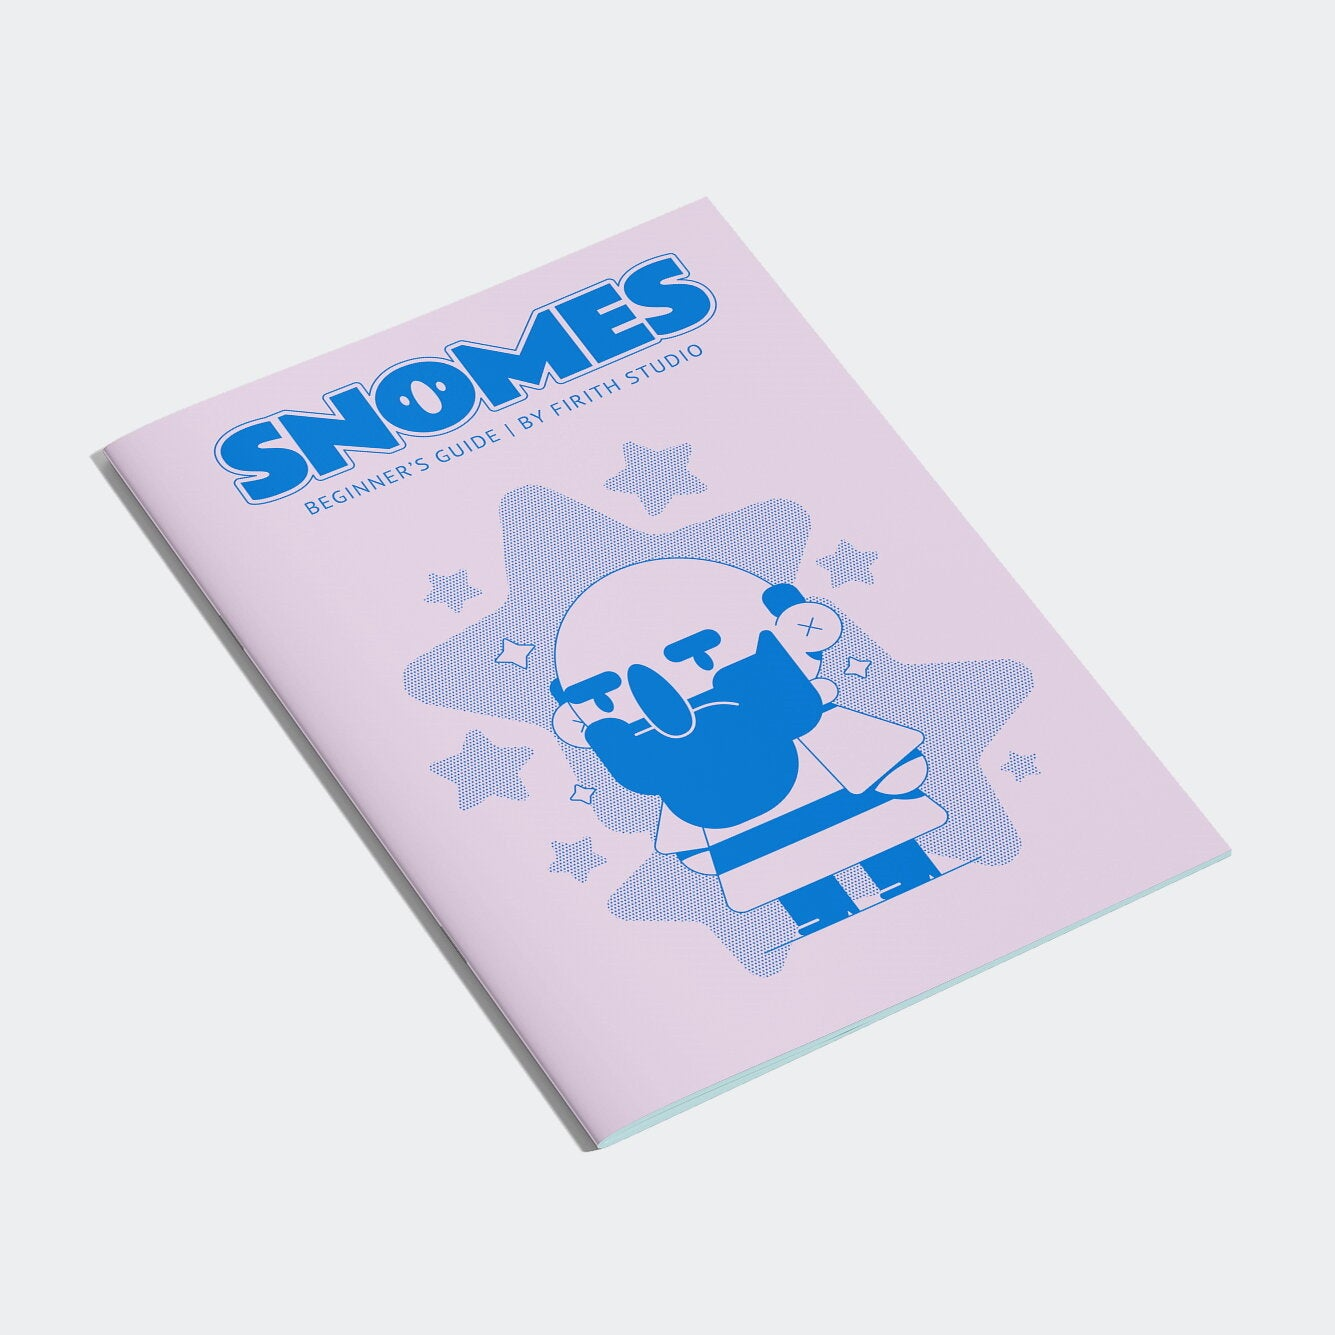 Snomes: RPG Zine Booklet